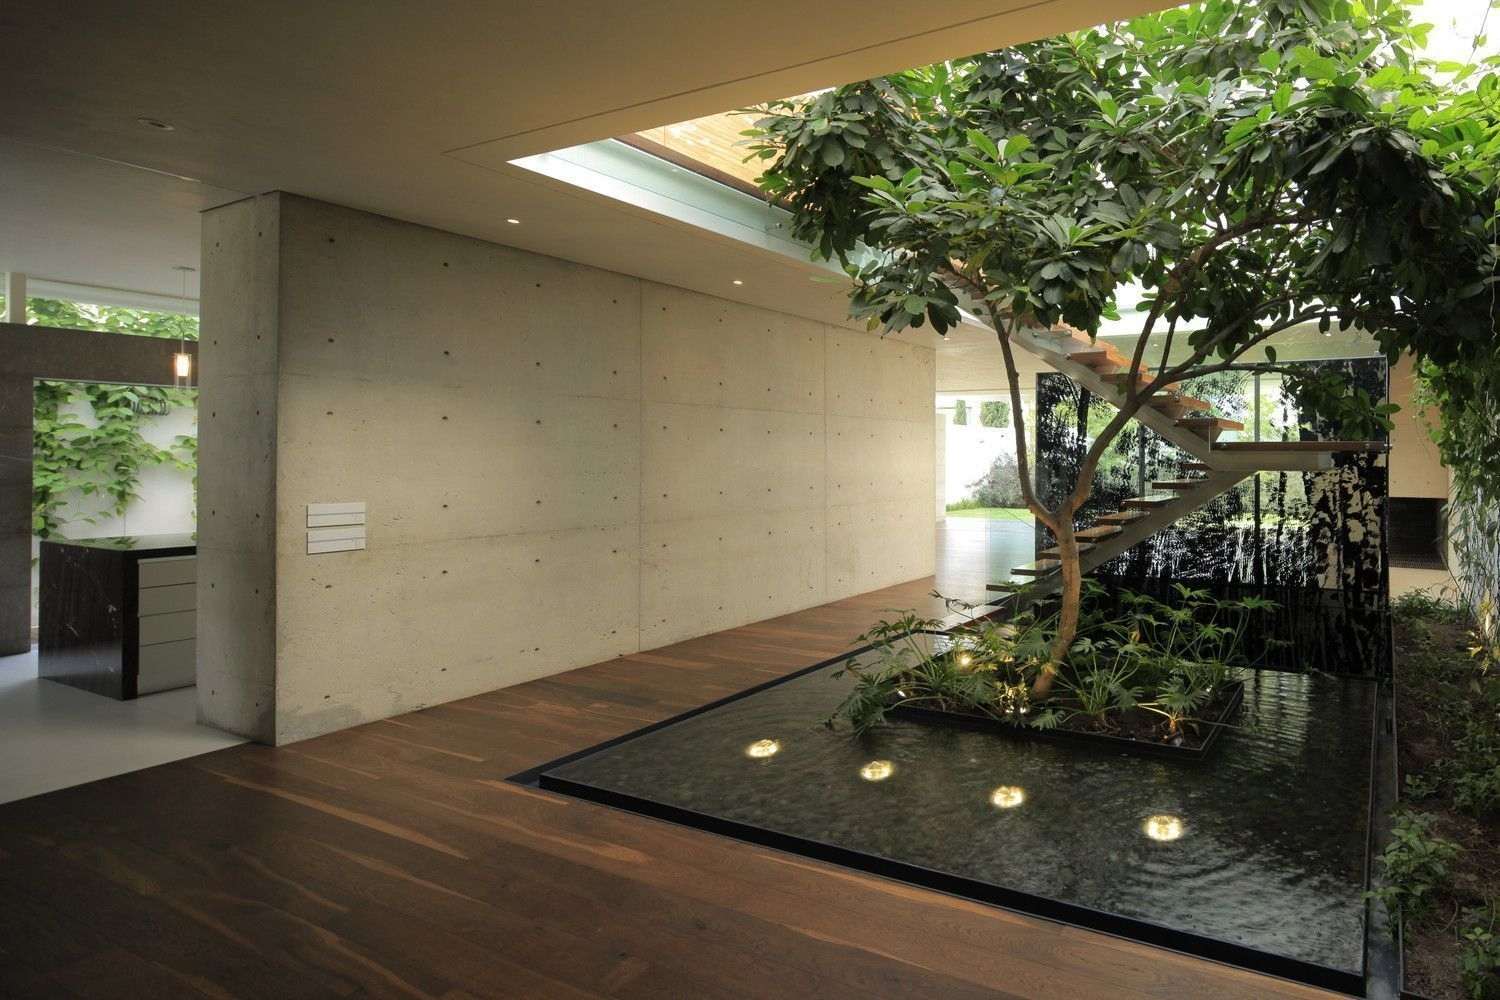 Αποτέλεσμα Εικόνας Για Small Zen Garden Interior Ideas within Zen Garden Interior Design